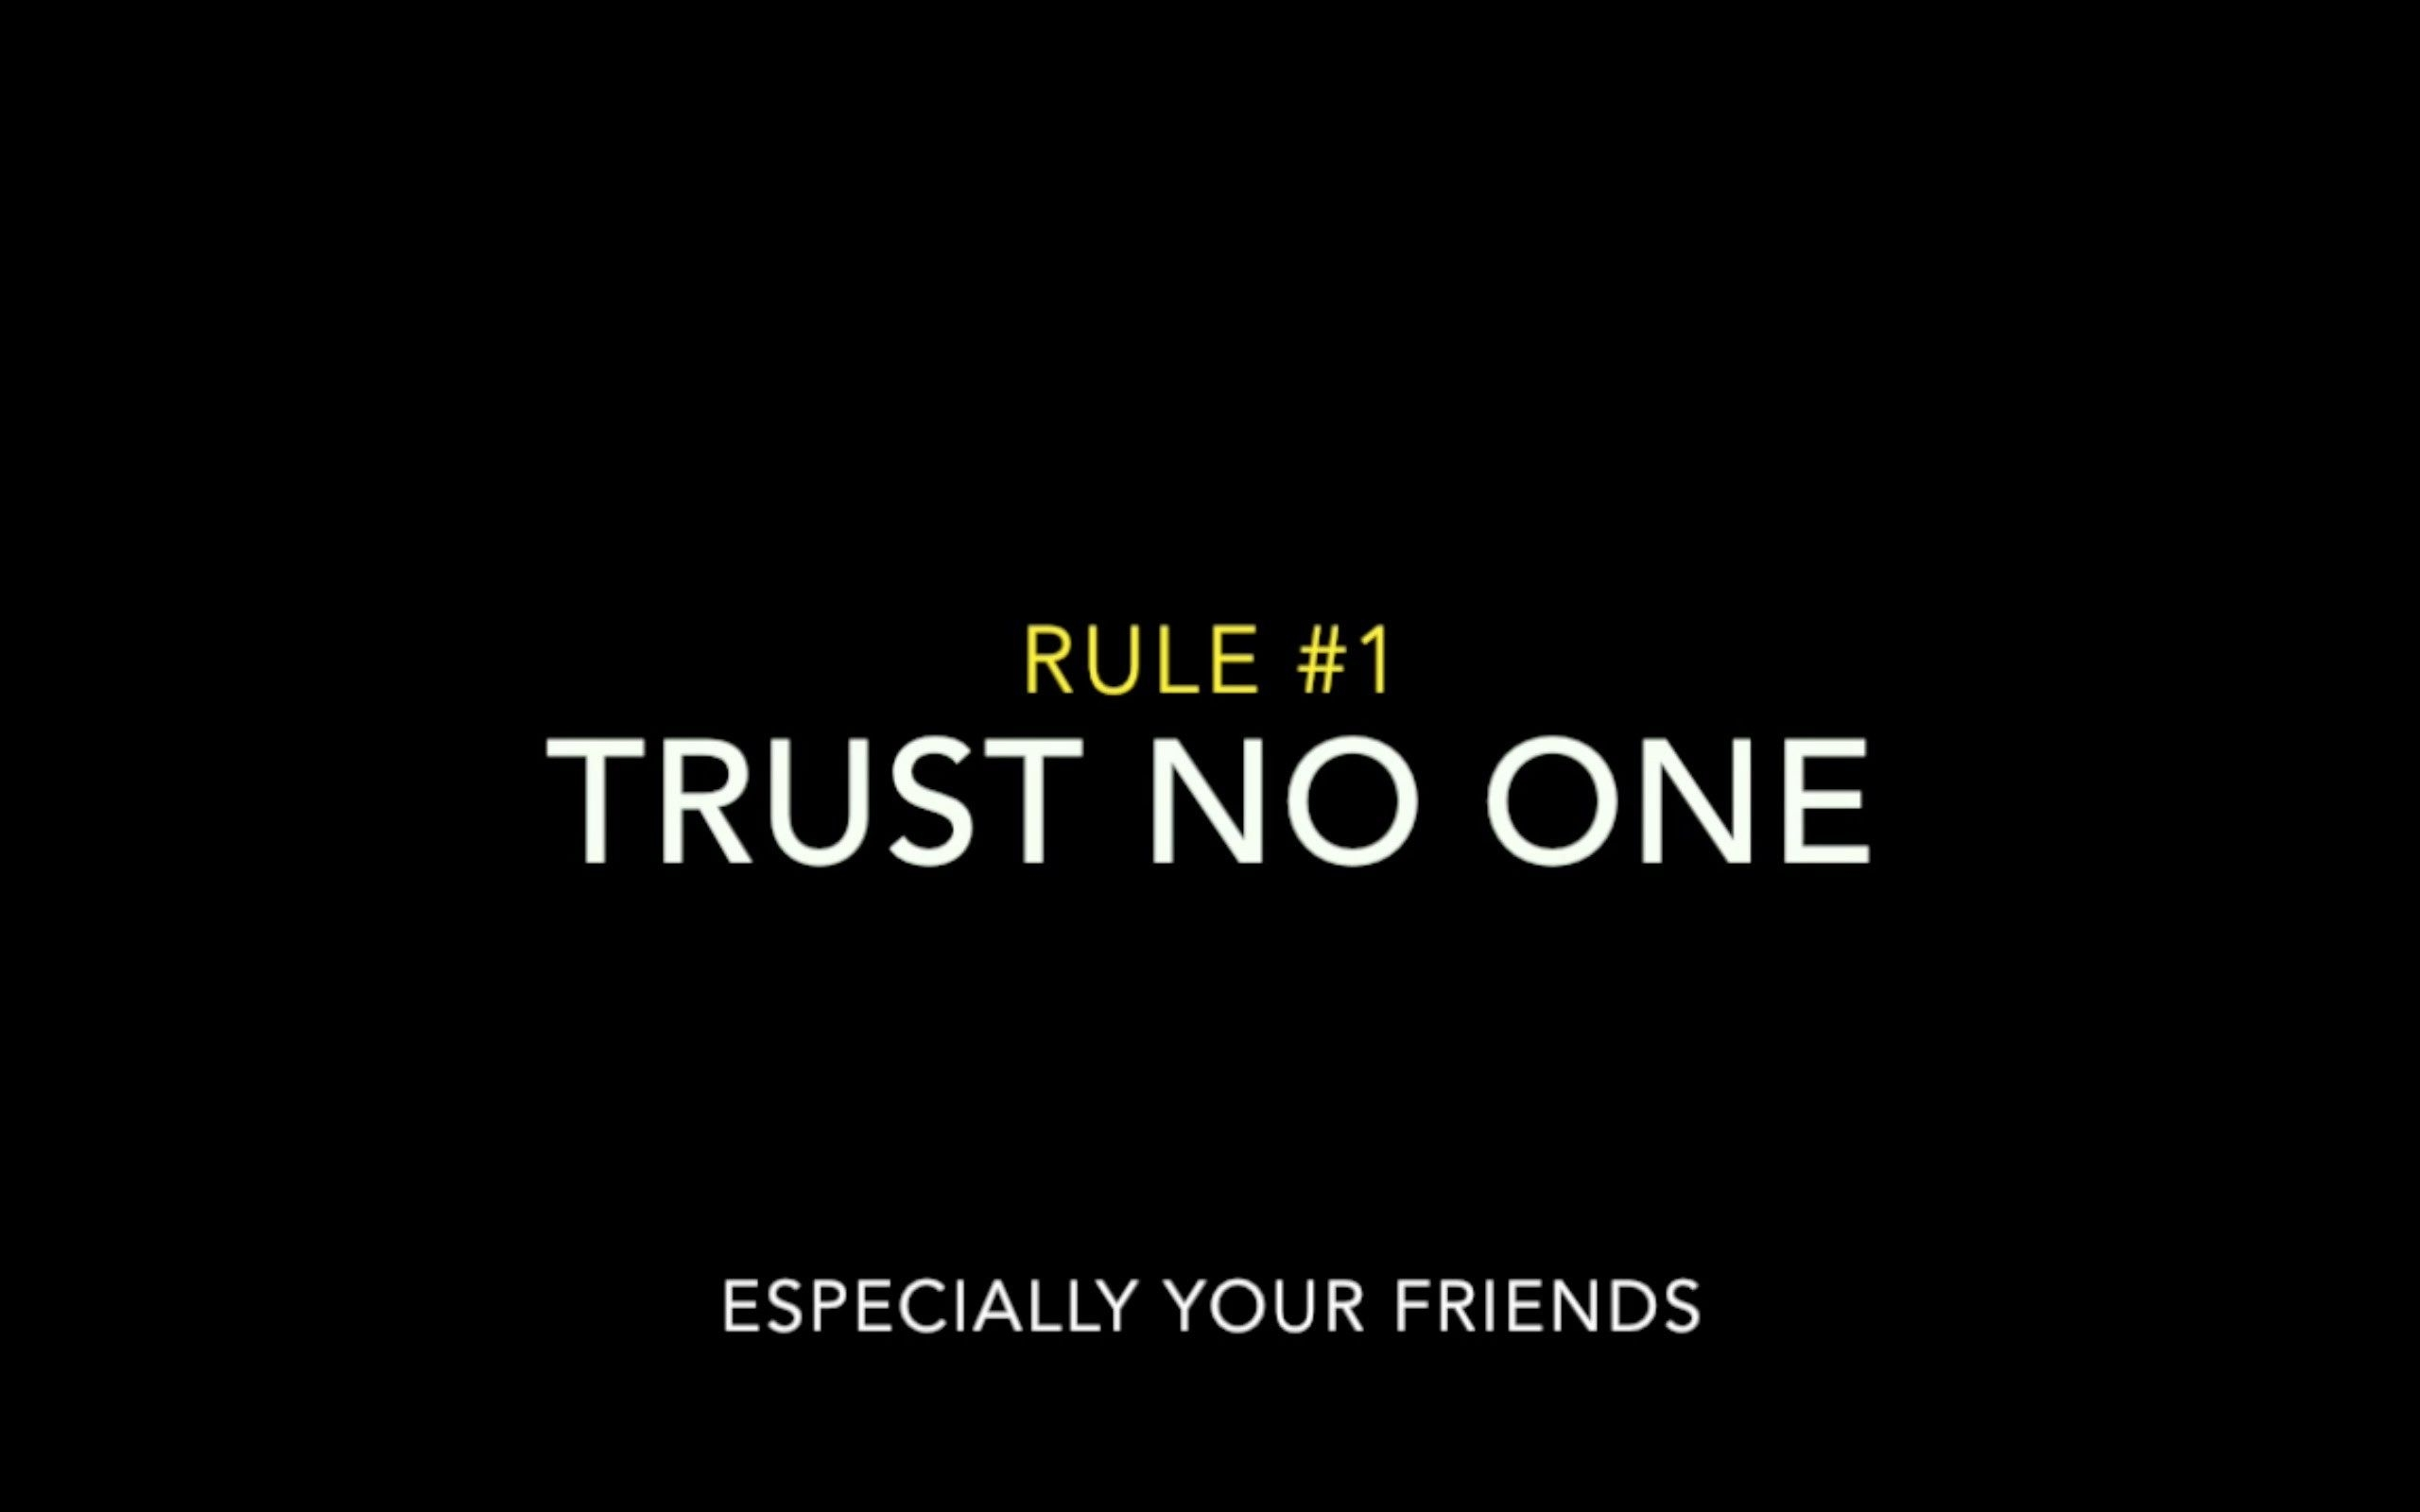 trust no one wallpapers - wallpaper cave